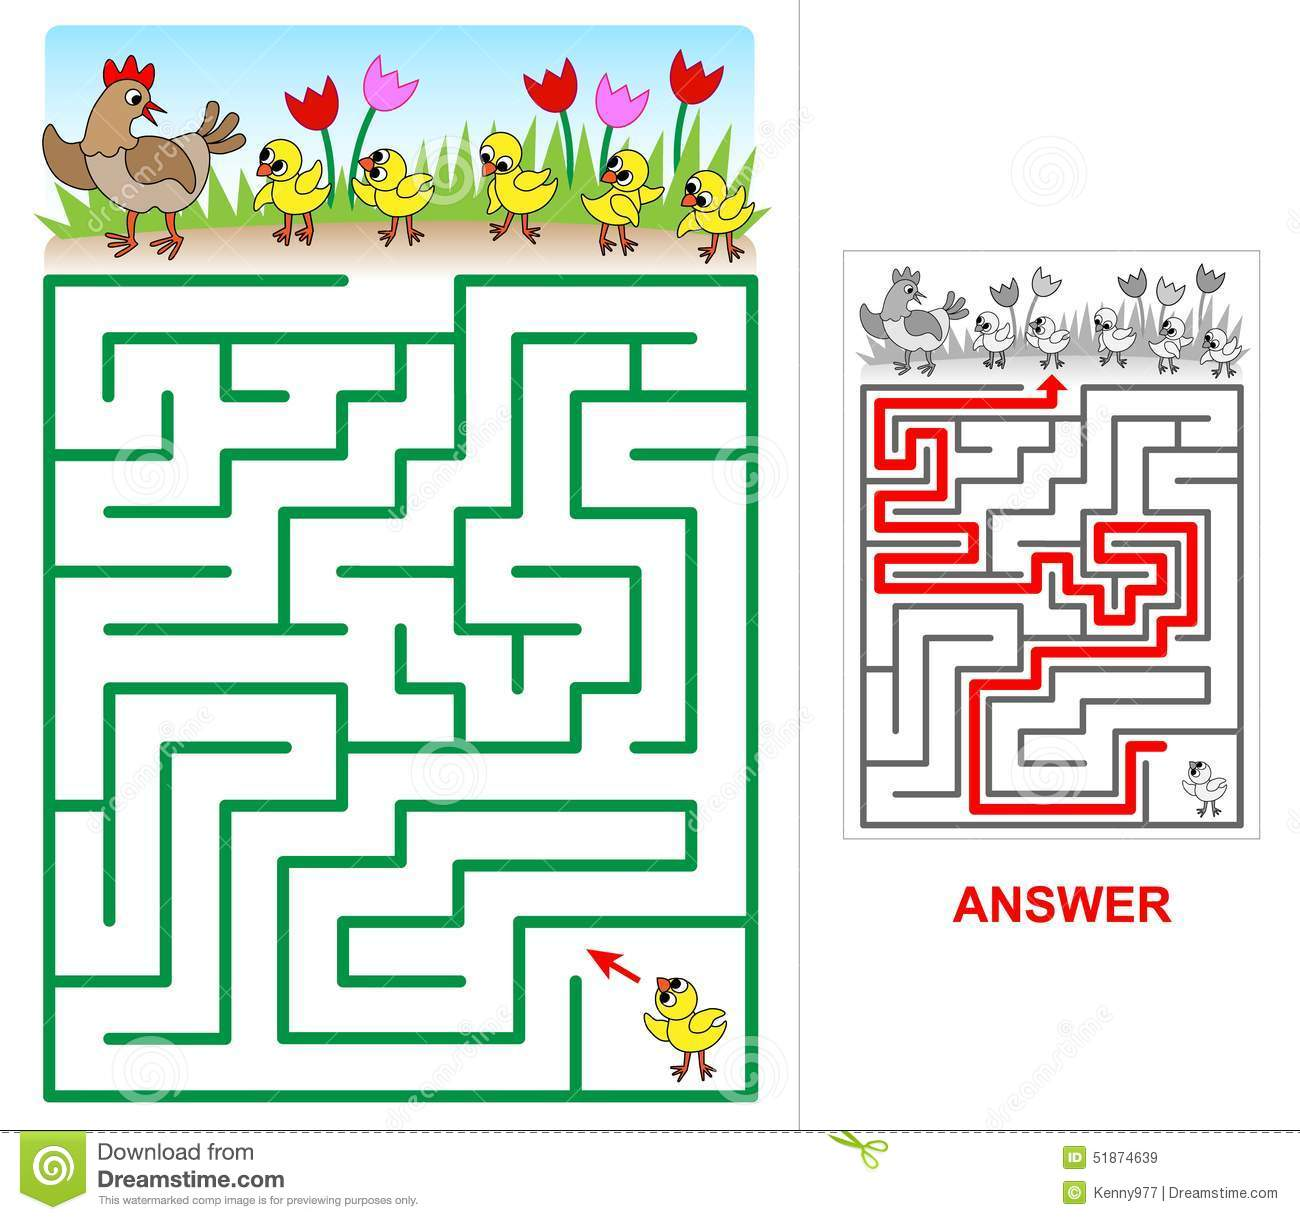 Easy Chicken Maze Cartoon Vector